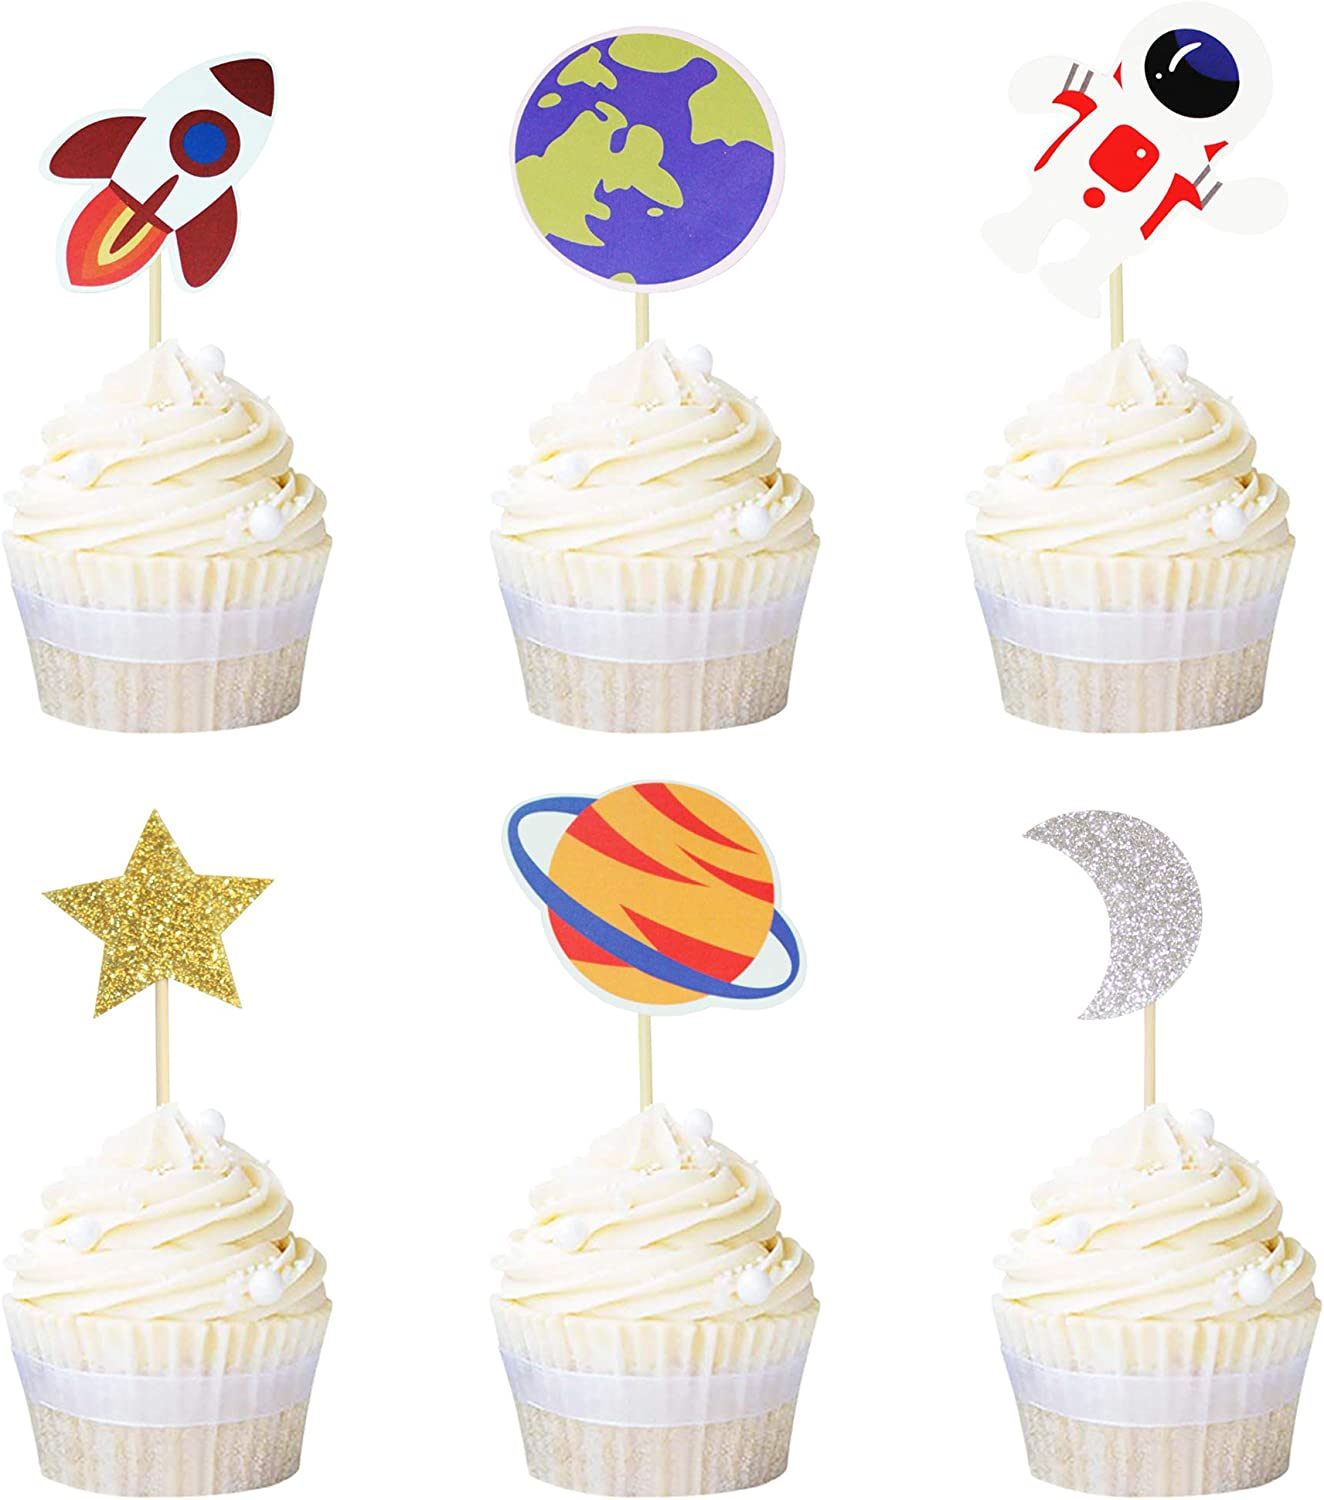 Ercadio 36 Pack Space Astronaut Cupcake Toppers Rocket Planet Trip to the Moon Cupcake Picks Baby Shower Boys Girls Birthday Outer Space Themed Party Cake Decorations Supplies